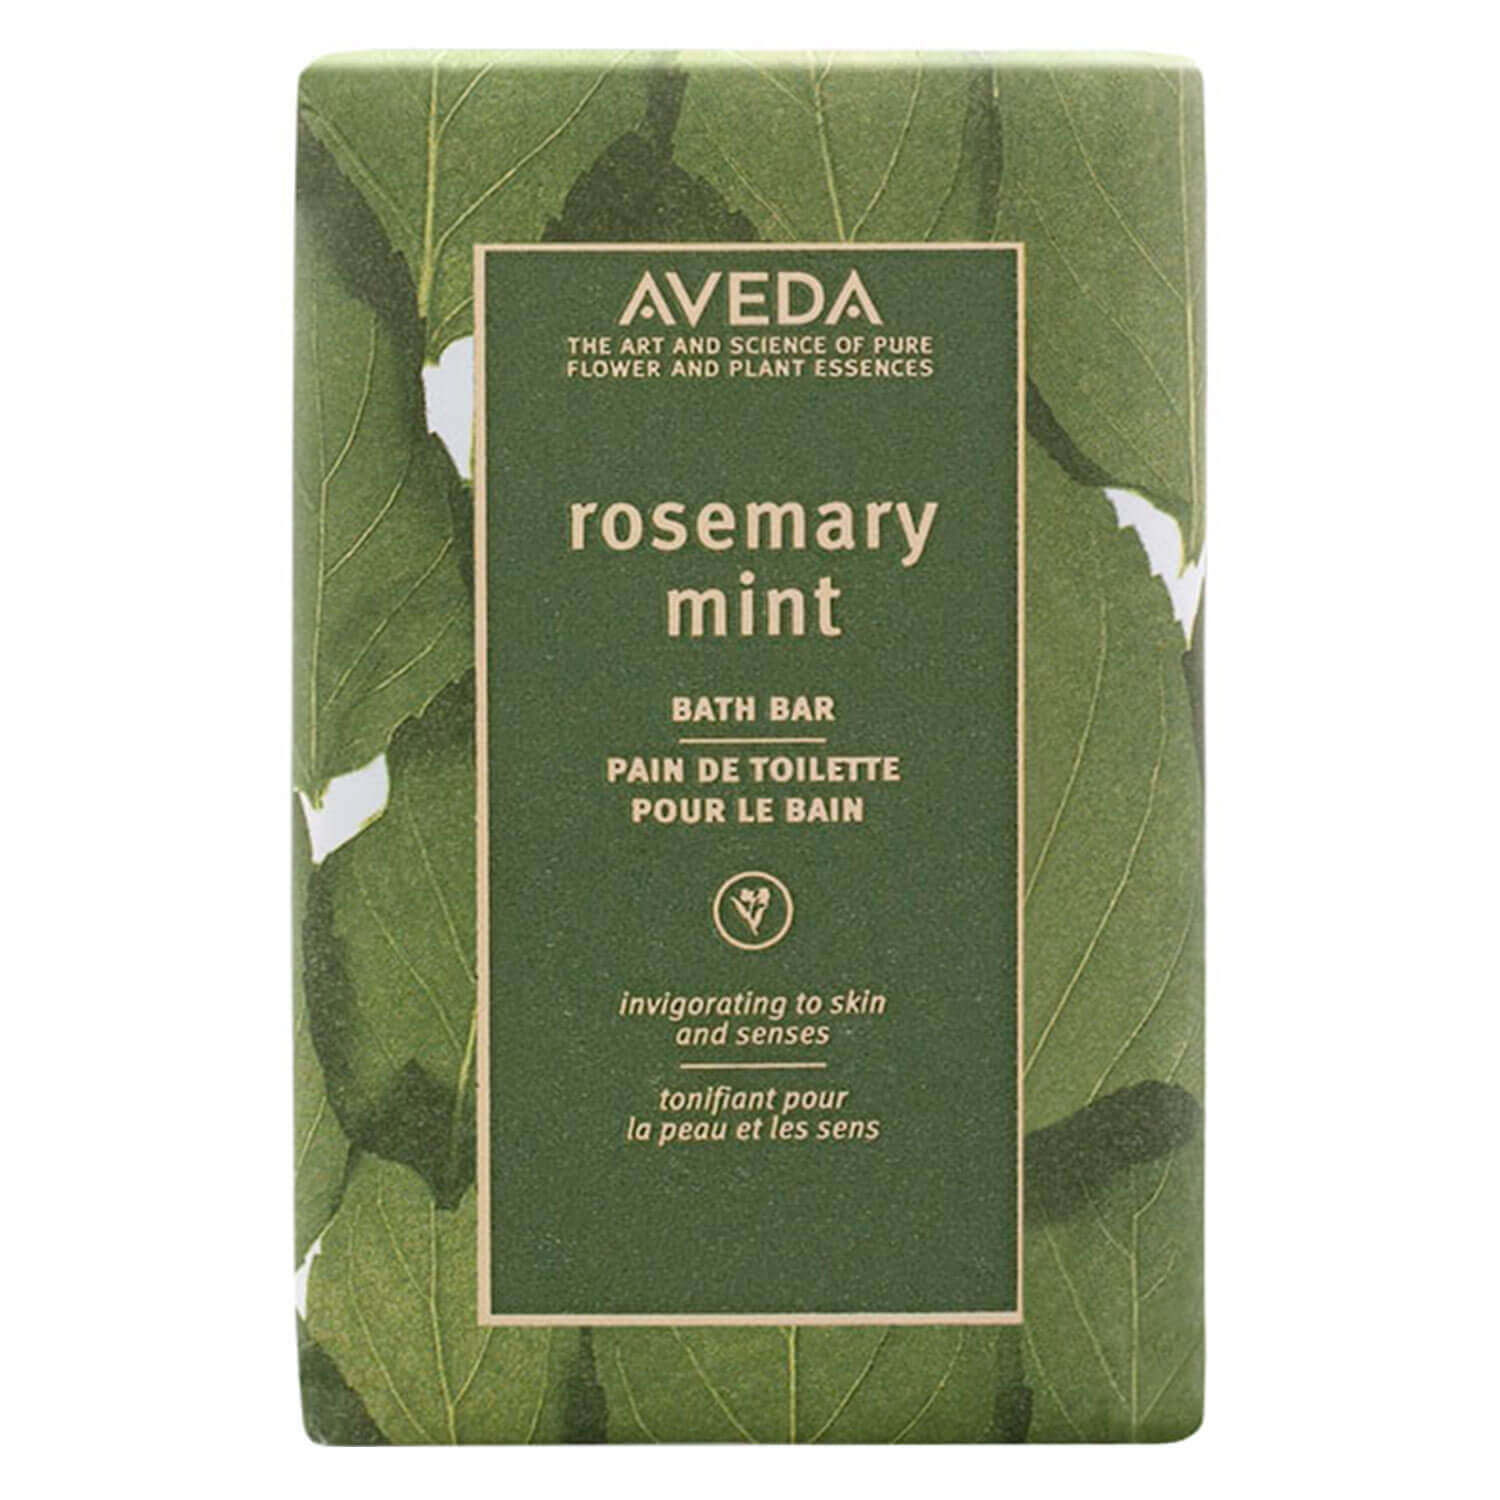 rosemary mint - bath bar